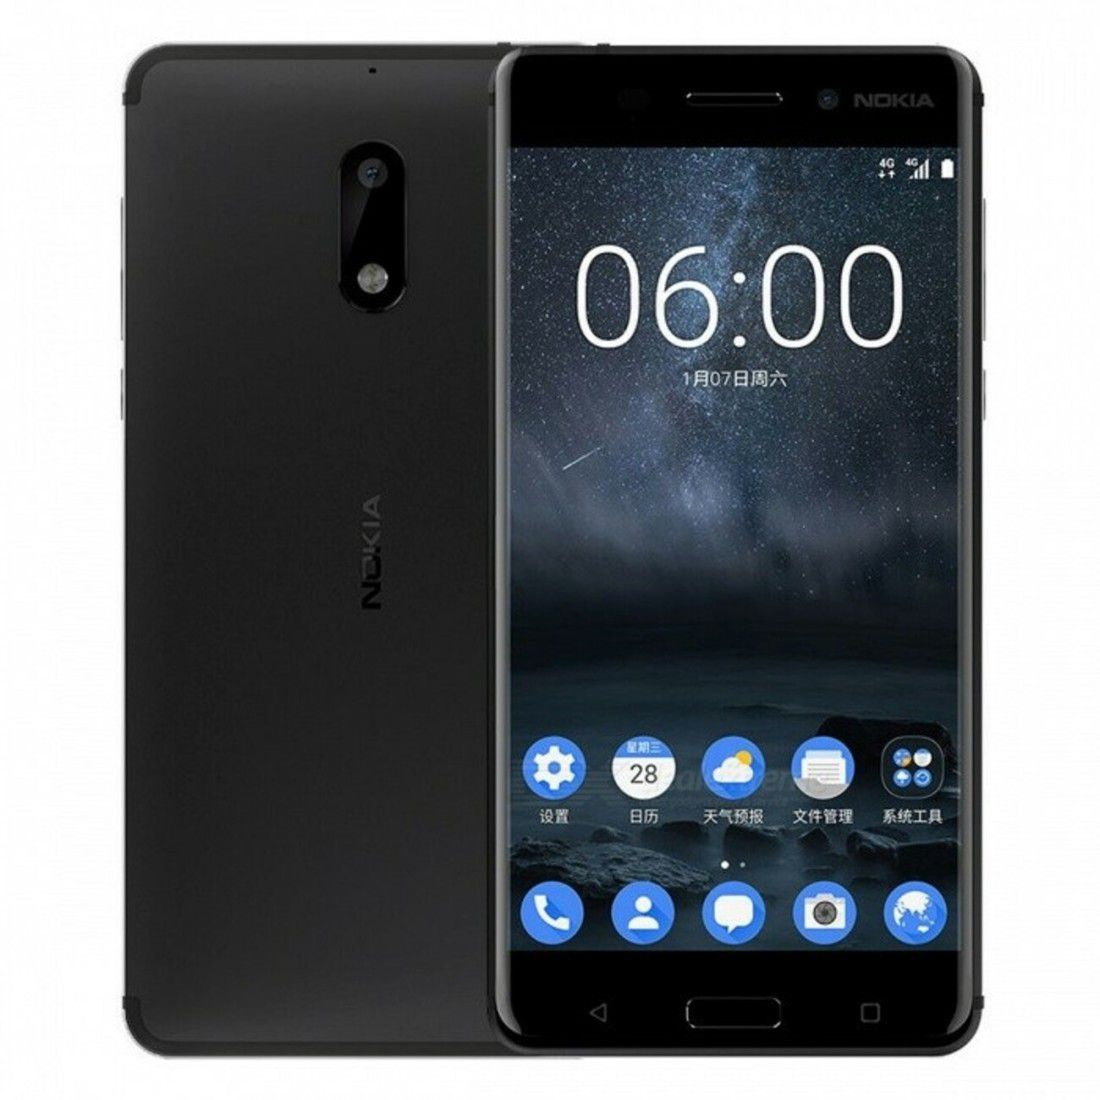 Smartphone Nokia 6 3GB Ram Tela 5.5 32GB Camera 16MP - Preto  - PAGDEPOIS